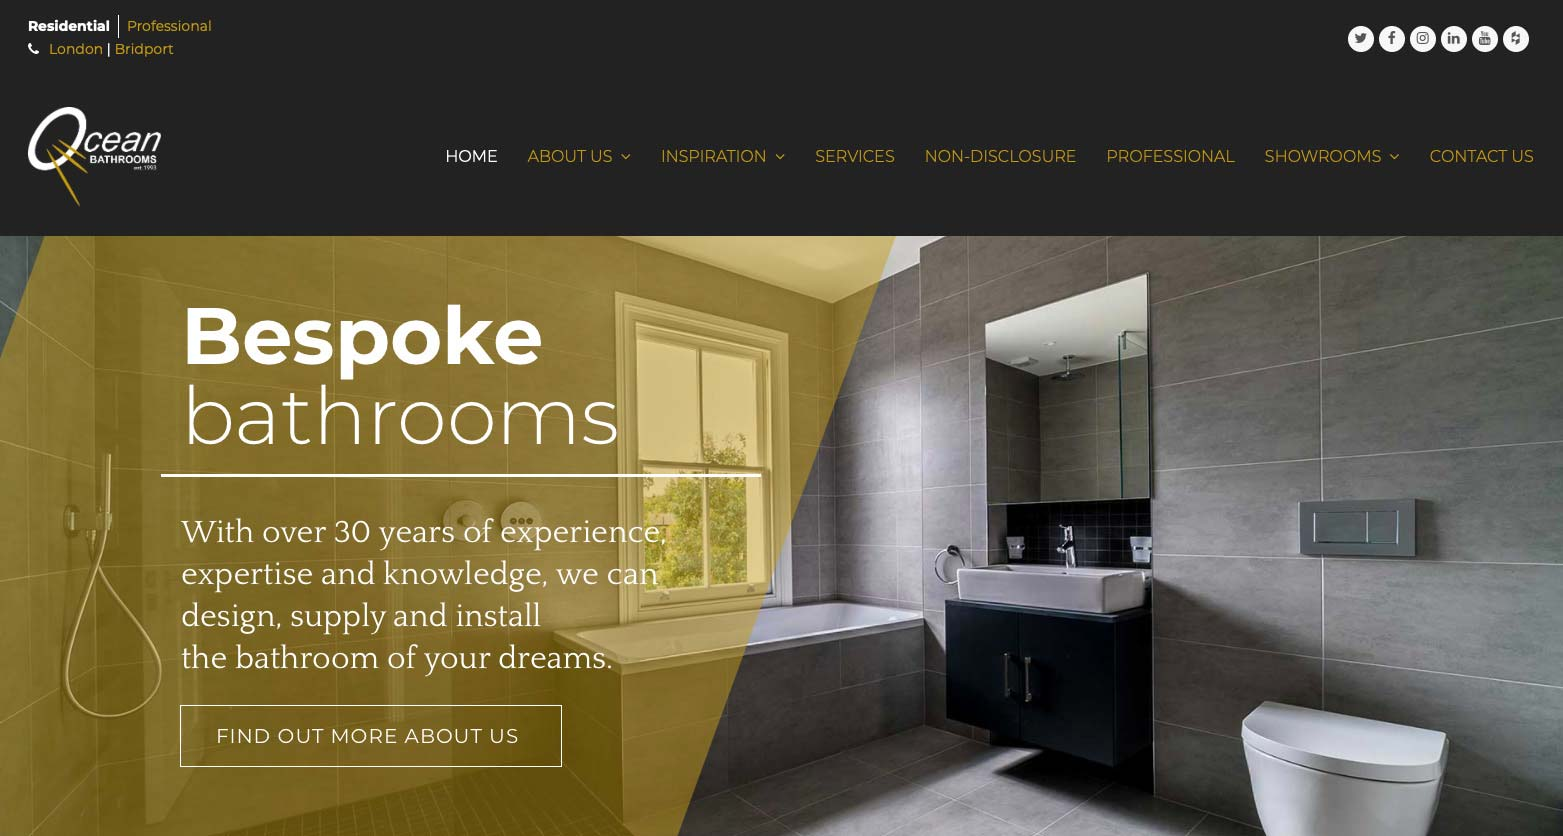 Ocean Bathrooms website home page